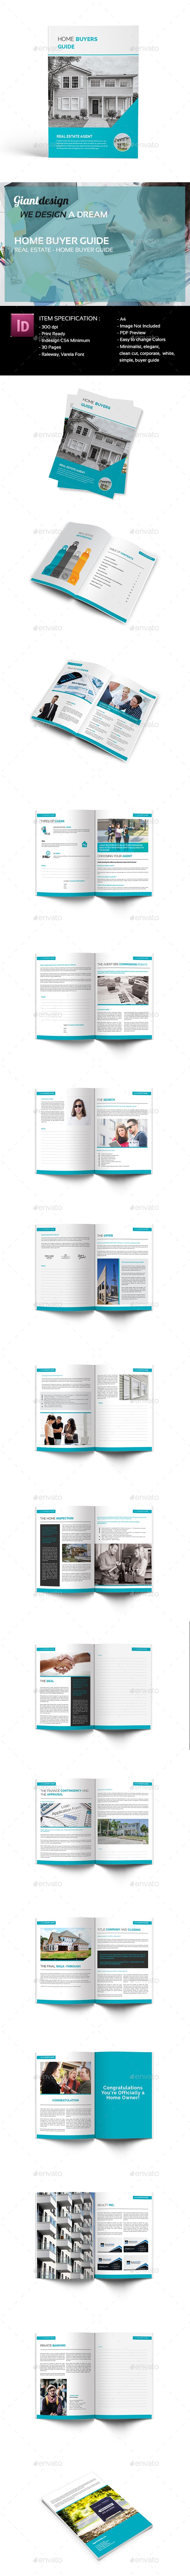 Real Estate Home Buyers Guide - Corporate Brochures